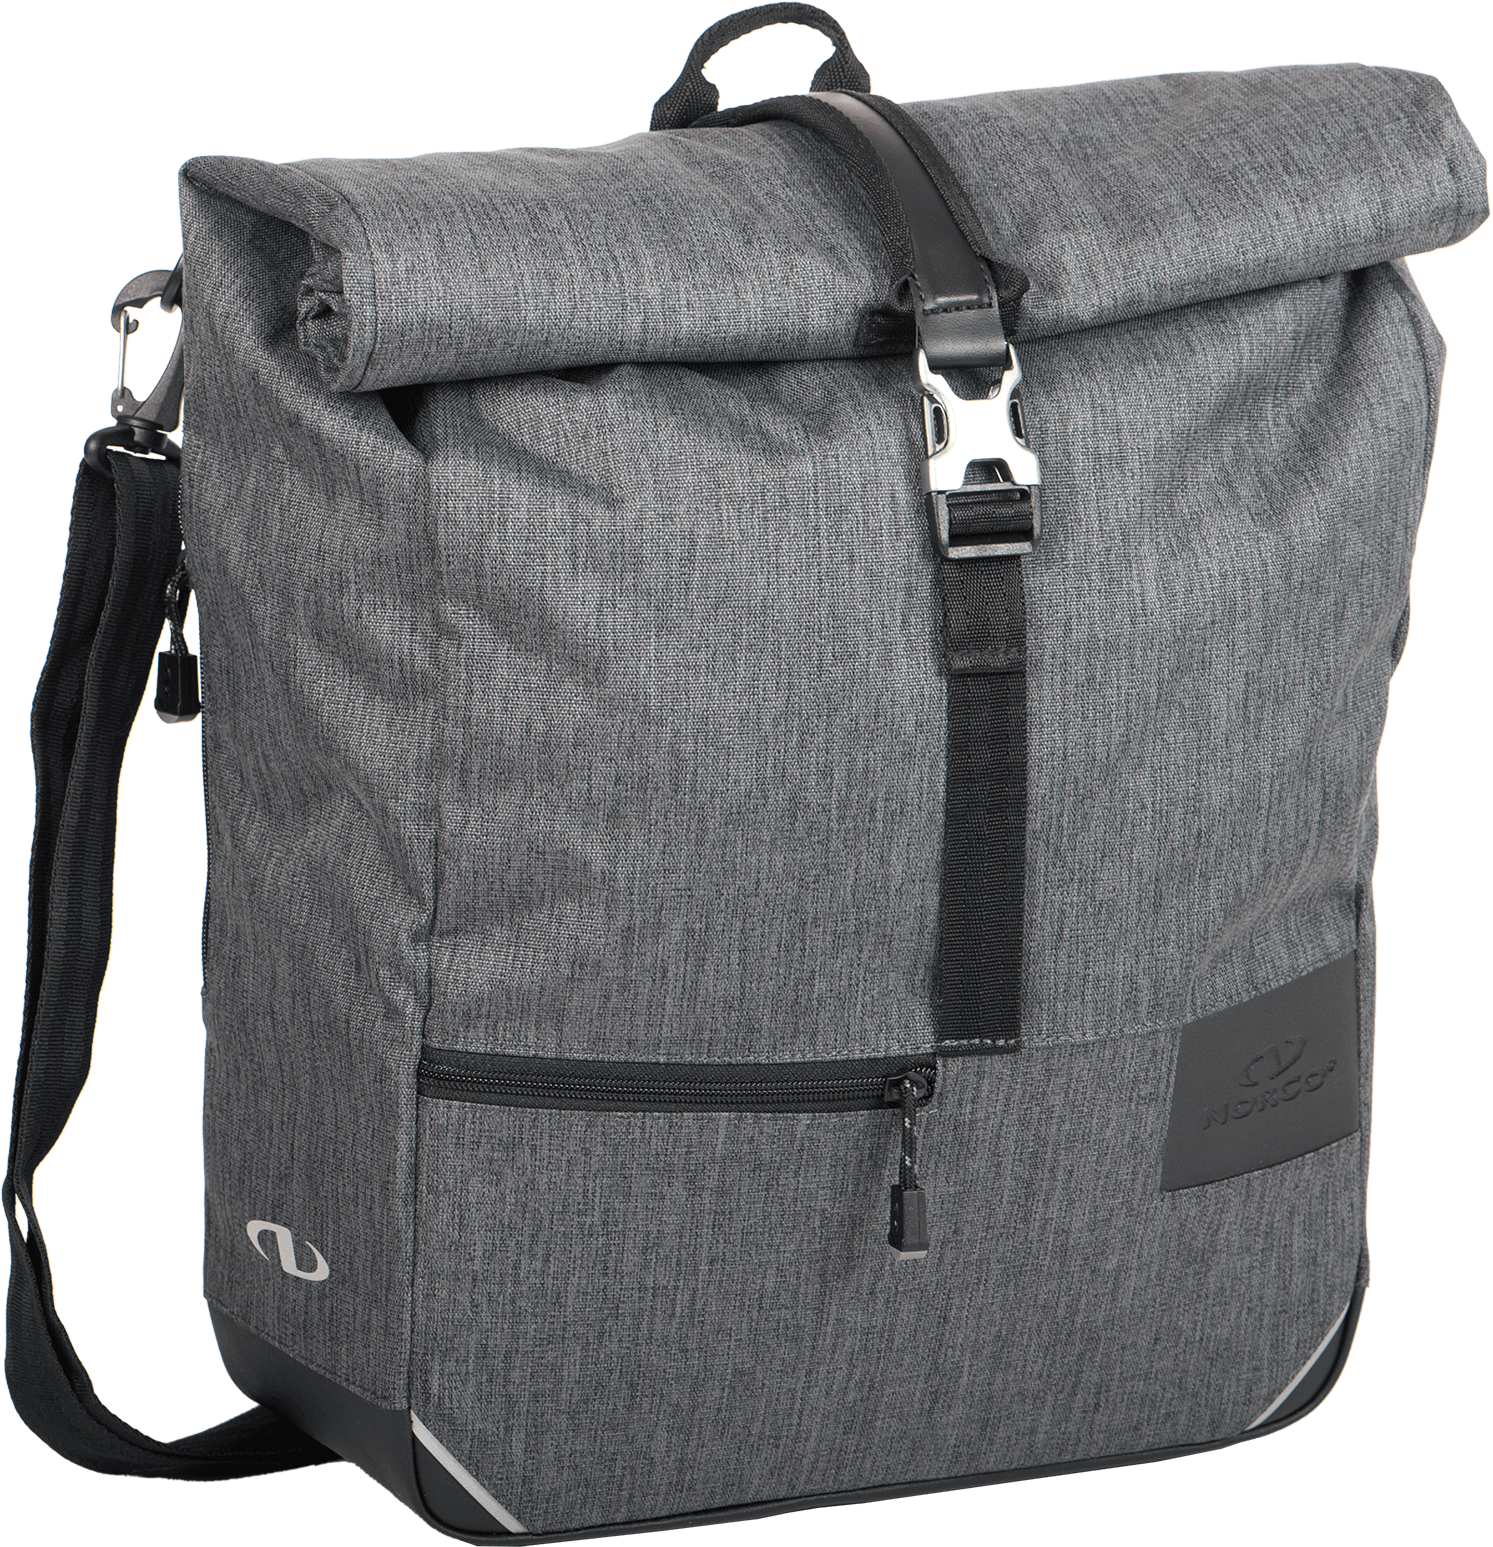 Fintry City Bag